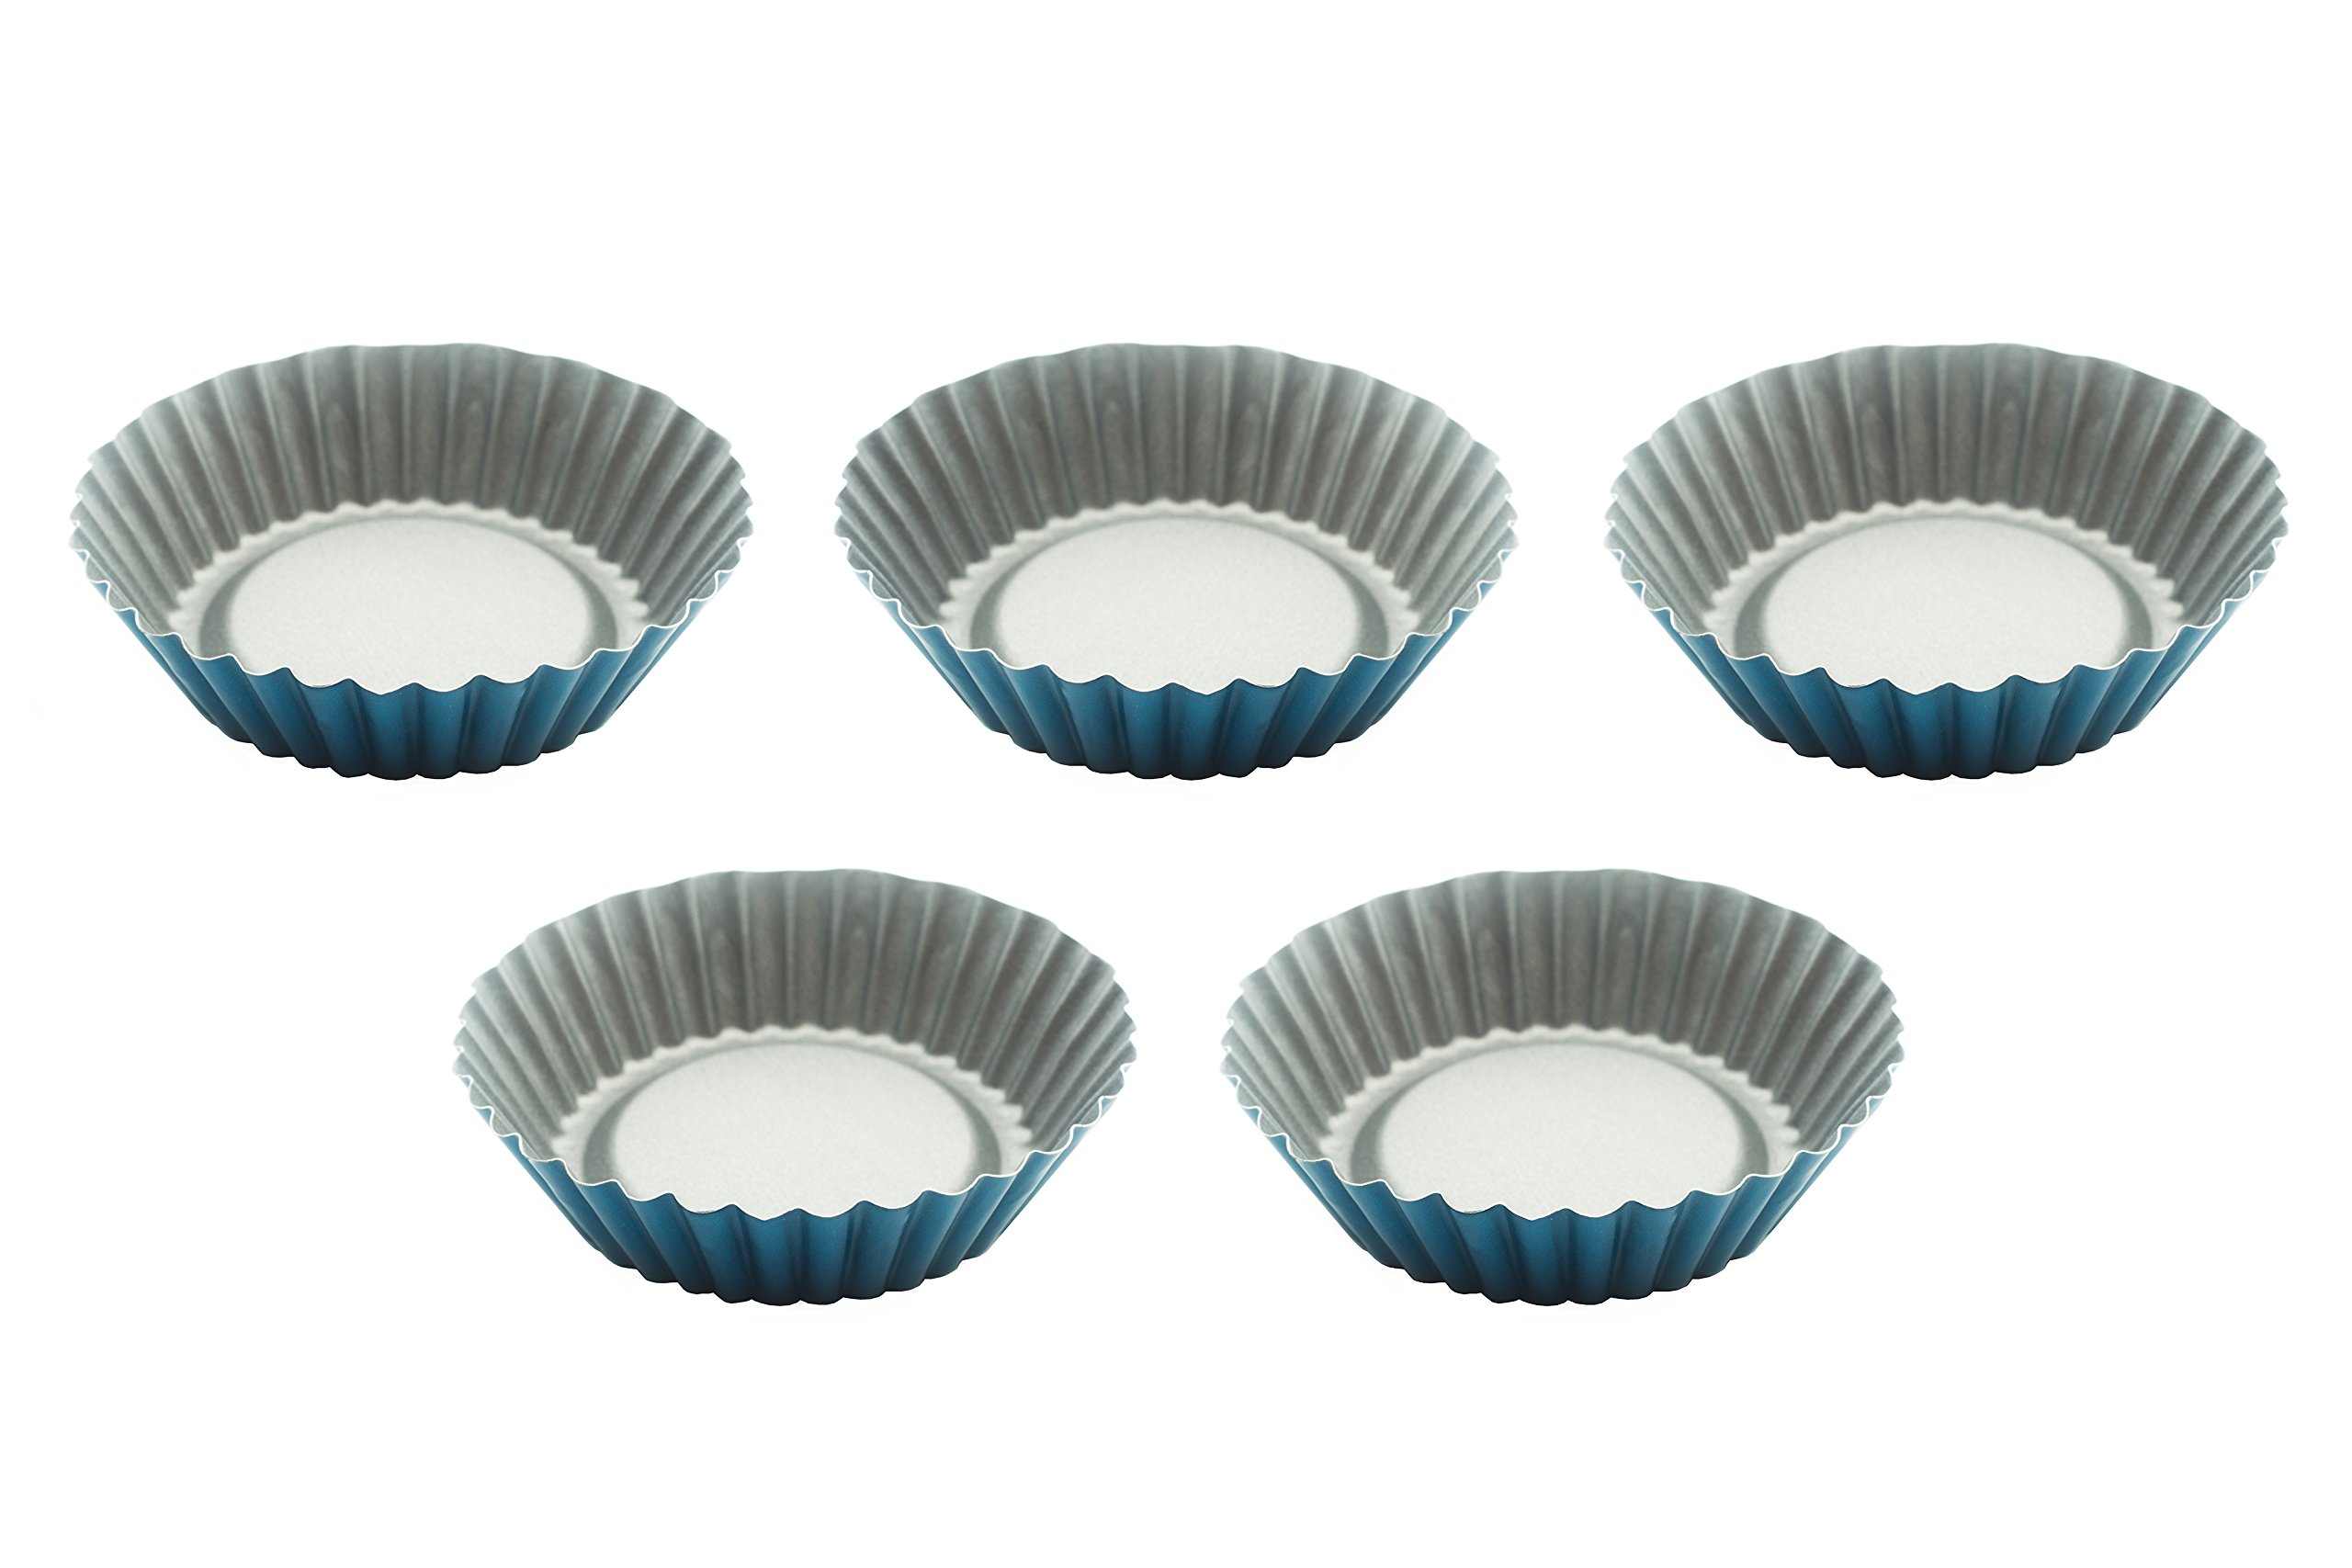 "Mini Tart Pan - 3.9"" Set 5 pcs Tartalet Molds - Teflon Non-Stick Coating Tarts Pastry Baking Tins - Ideal for qiuche muffin cheesecake deserts and more"